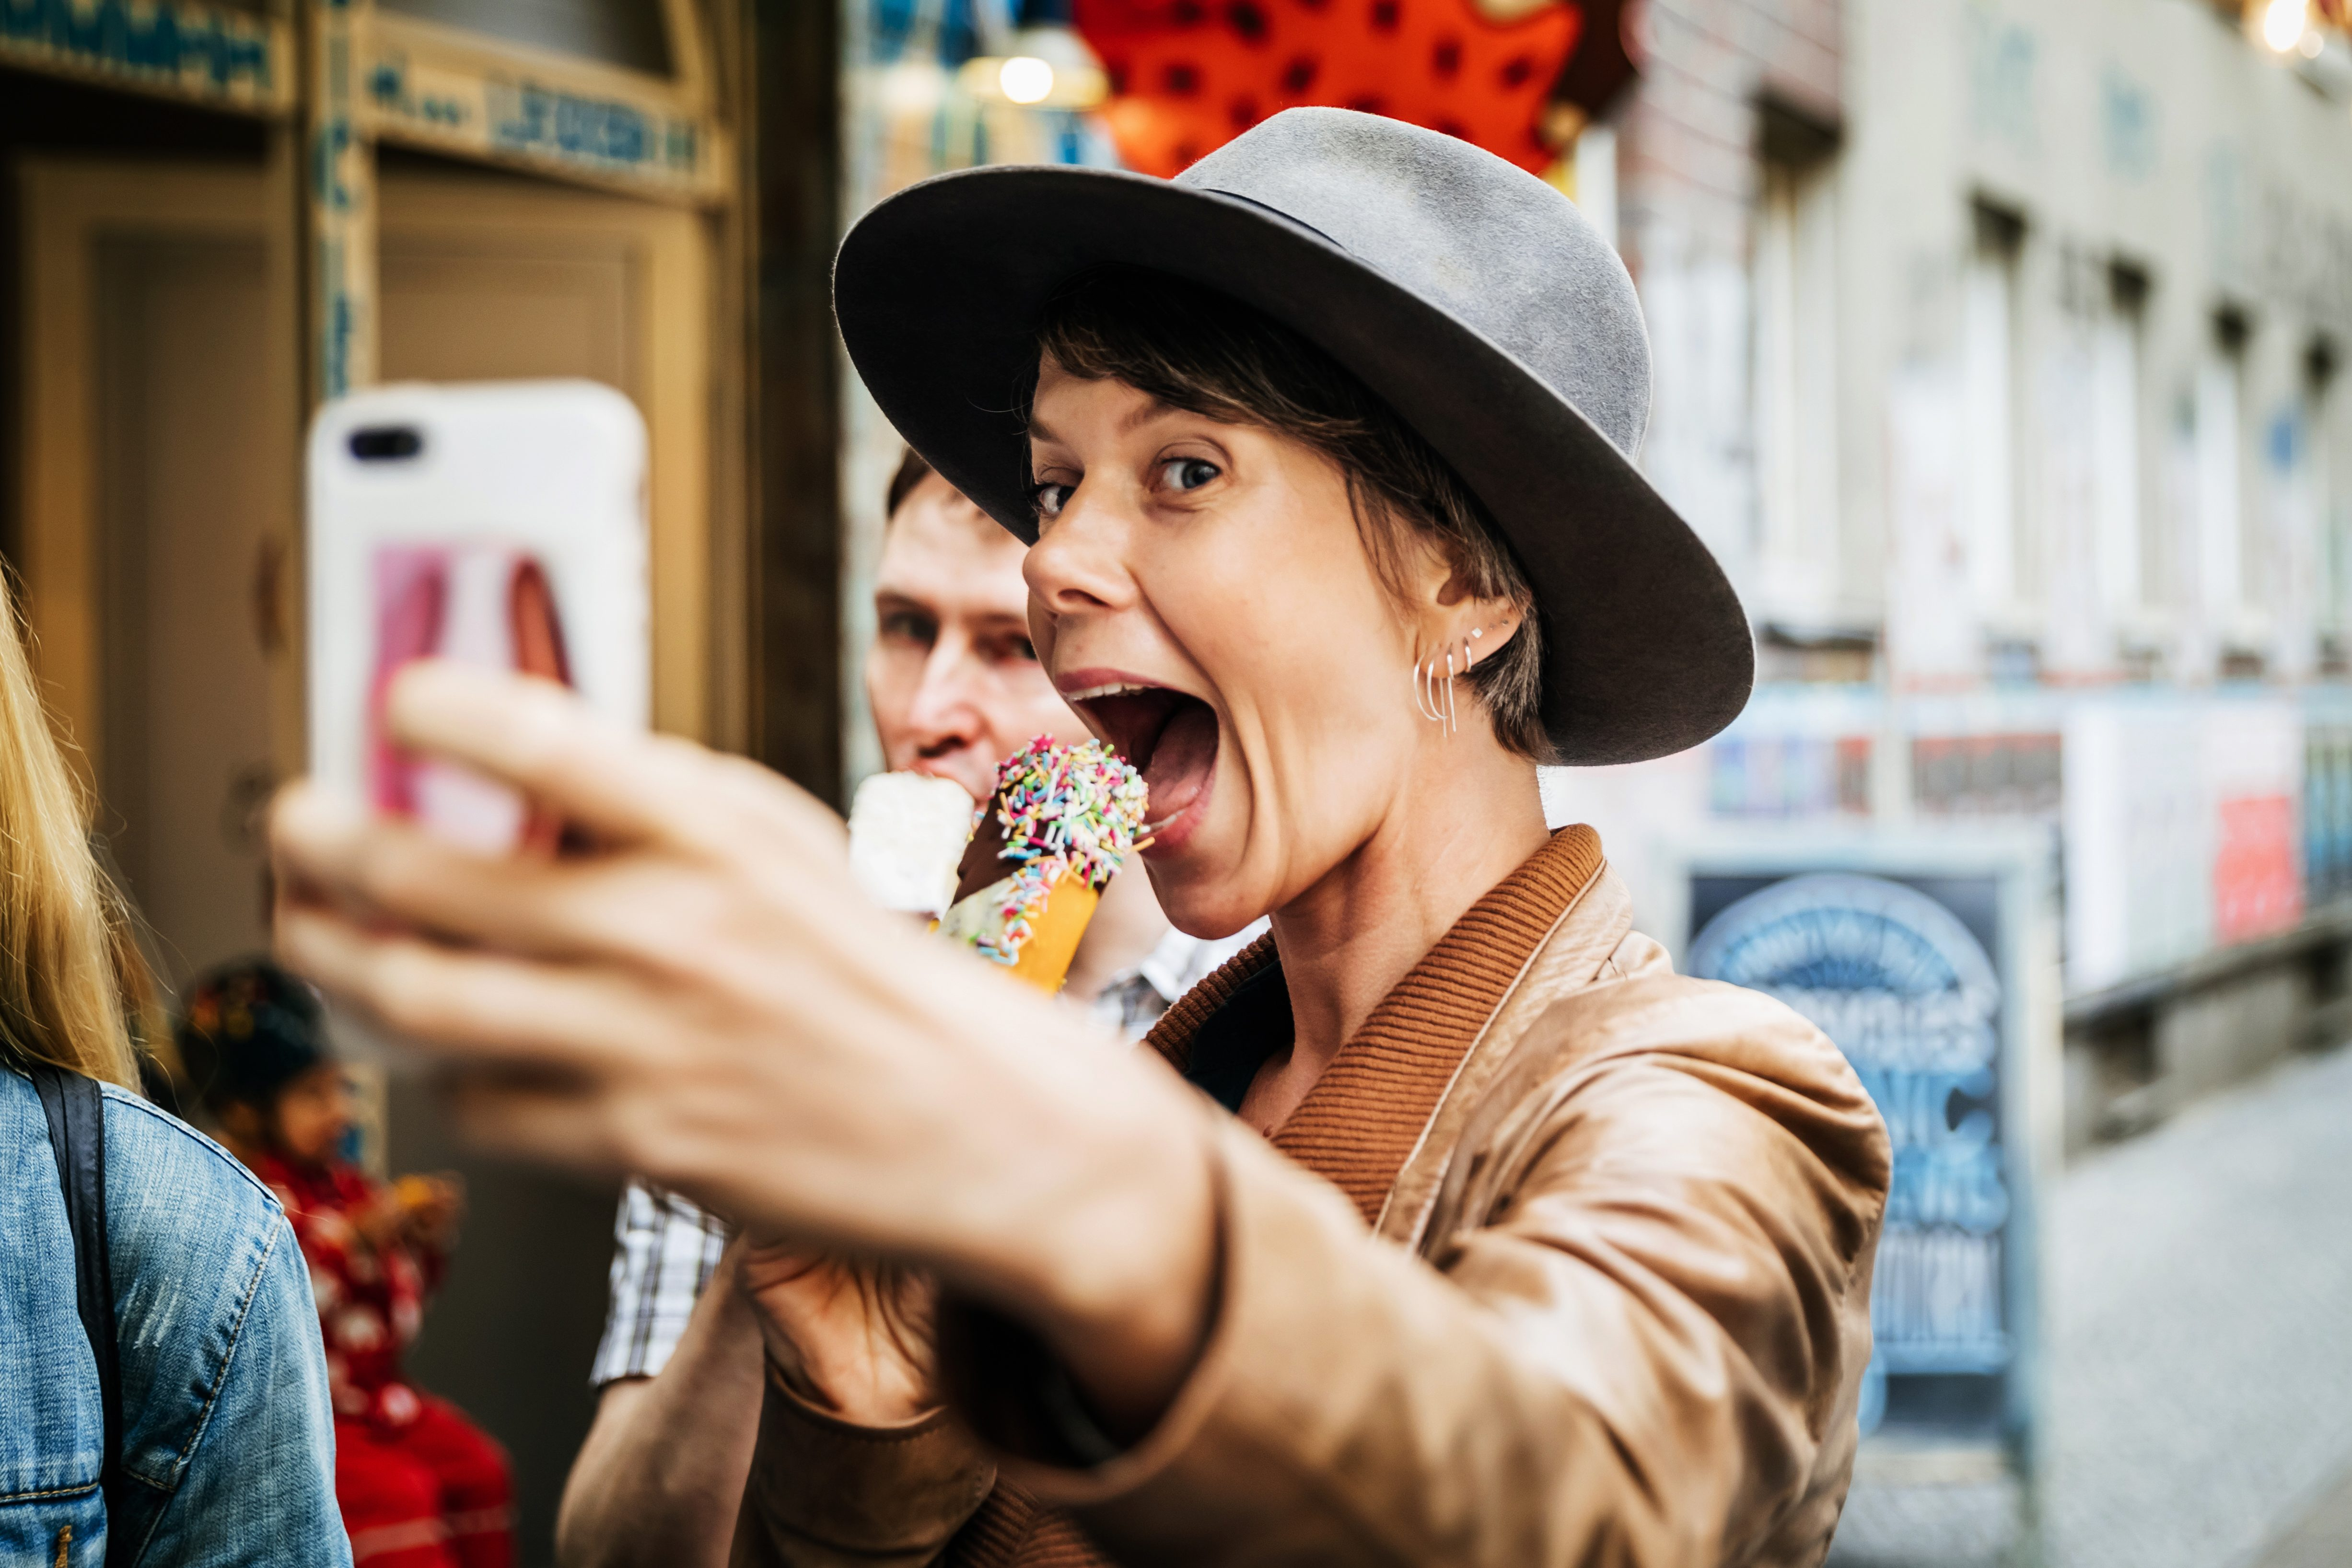 selfie ice cream instagram food selfie